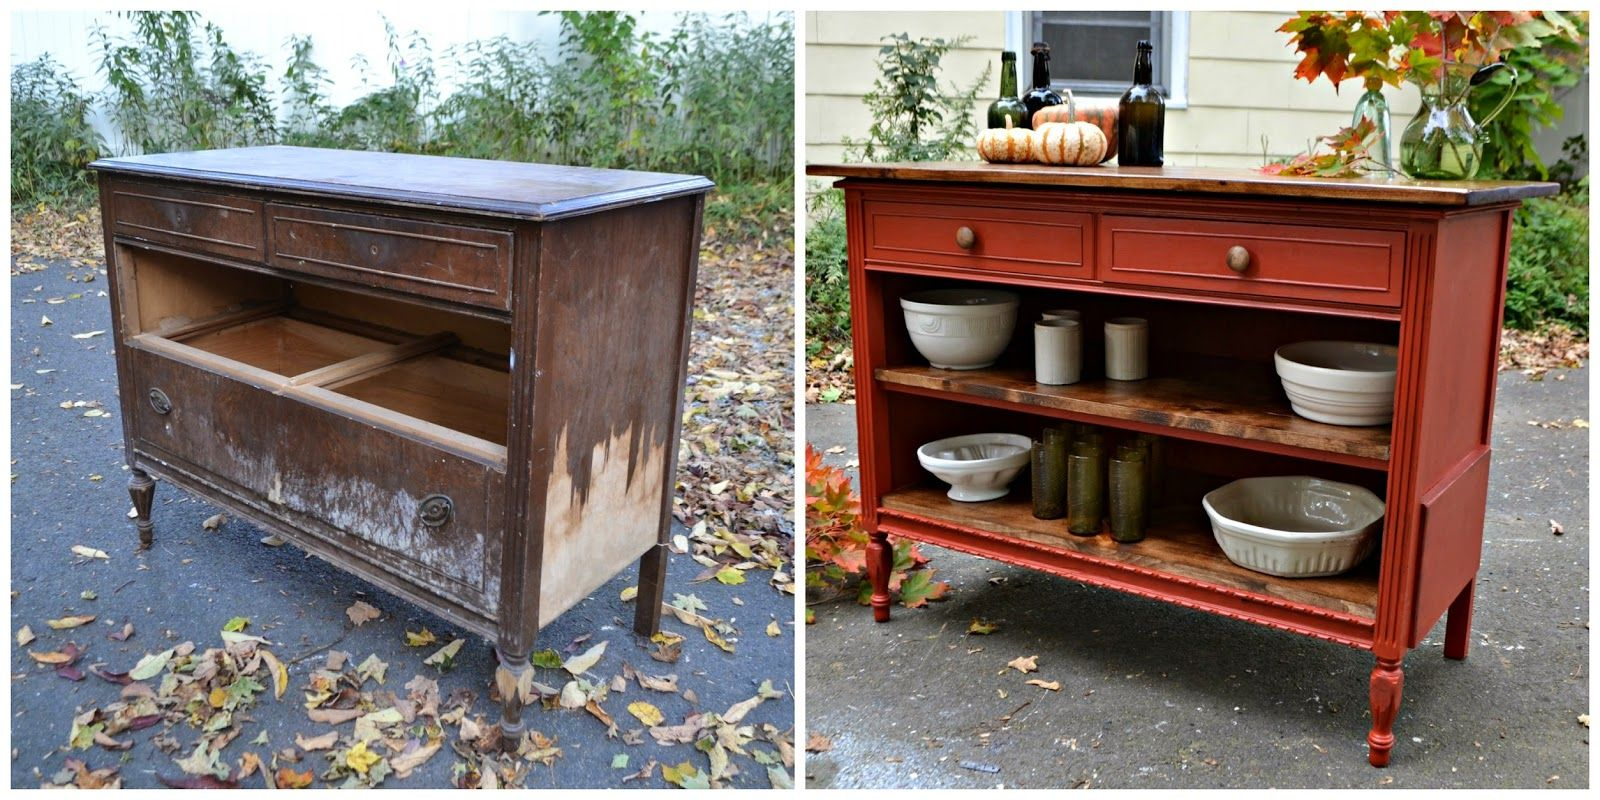 Upcycle An Old Dresser Into A Kitchen Island For Budget